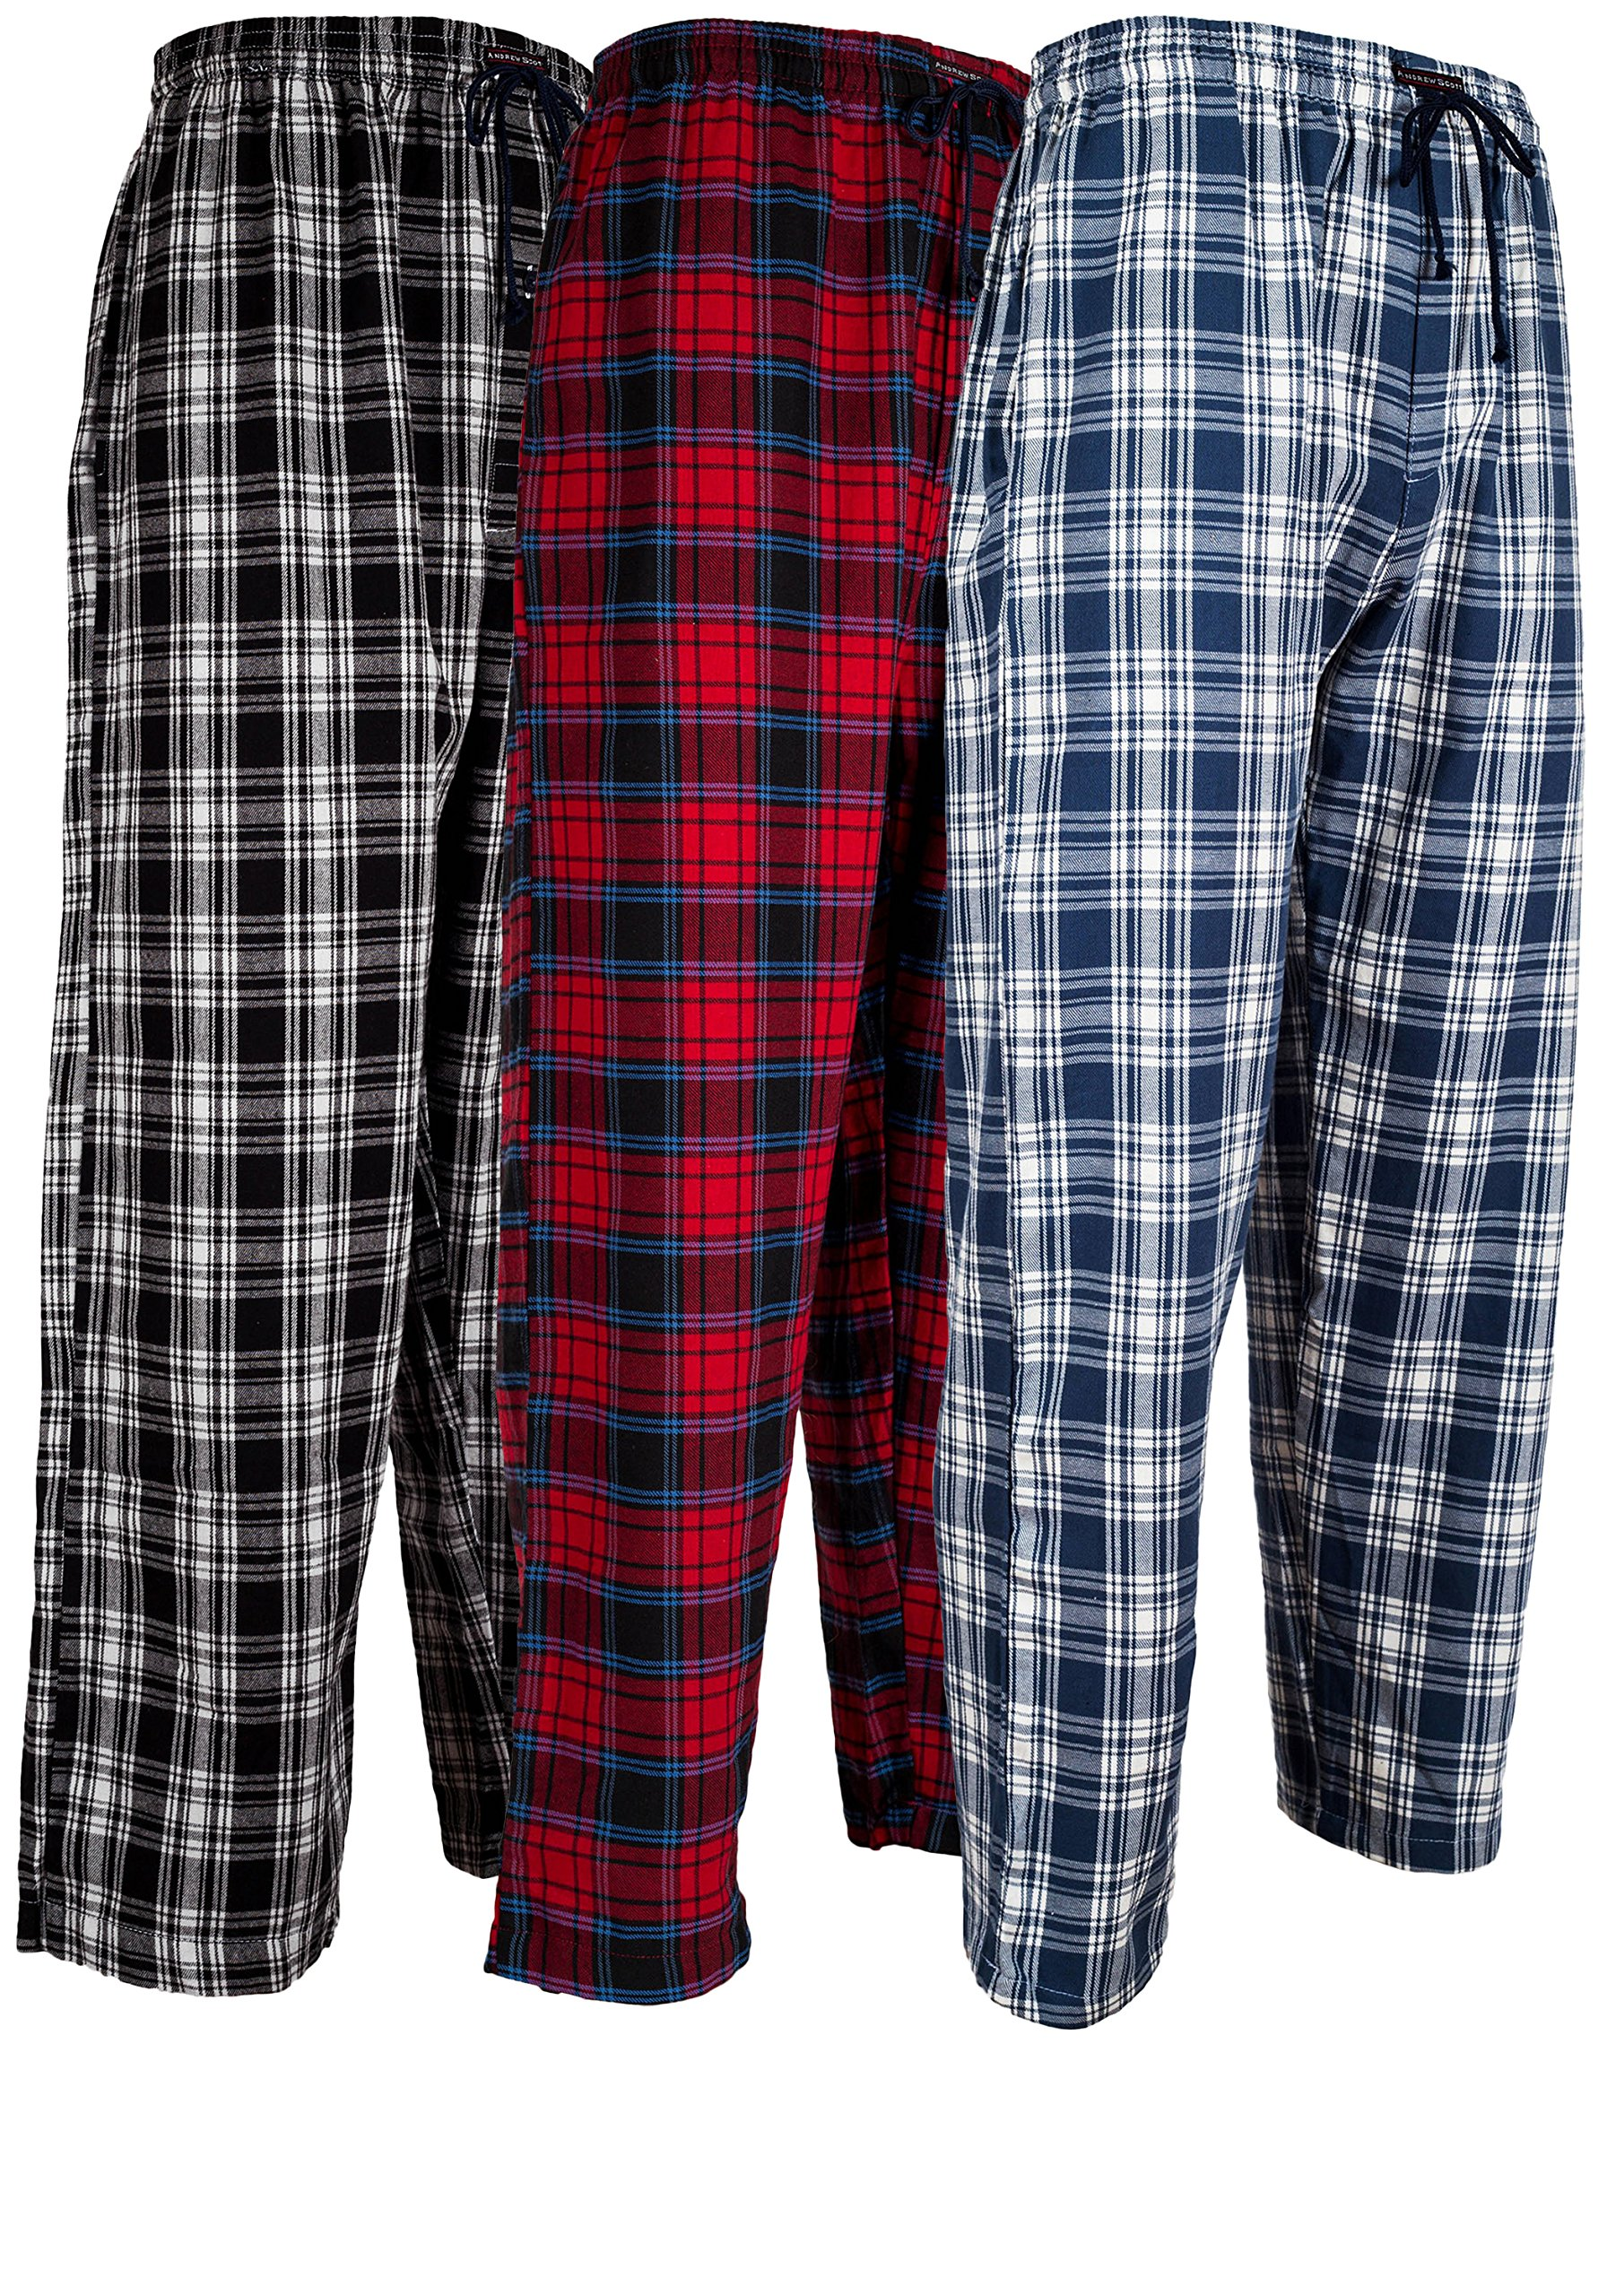 Andrew Scott Men's 3 Pack Cotton Flannel Fleece Brush Pajama Sleep & Lounge Pants (Medium / 32-34, 3 Pack - Classic Flannel Assorted Plaids) by Andrew Scott